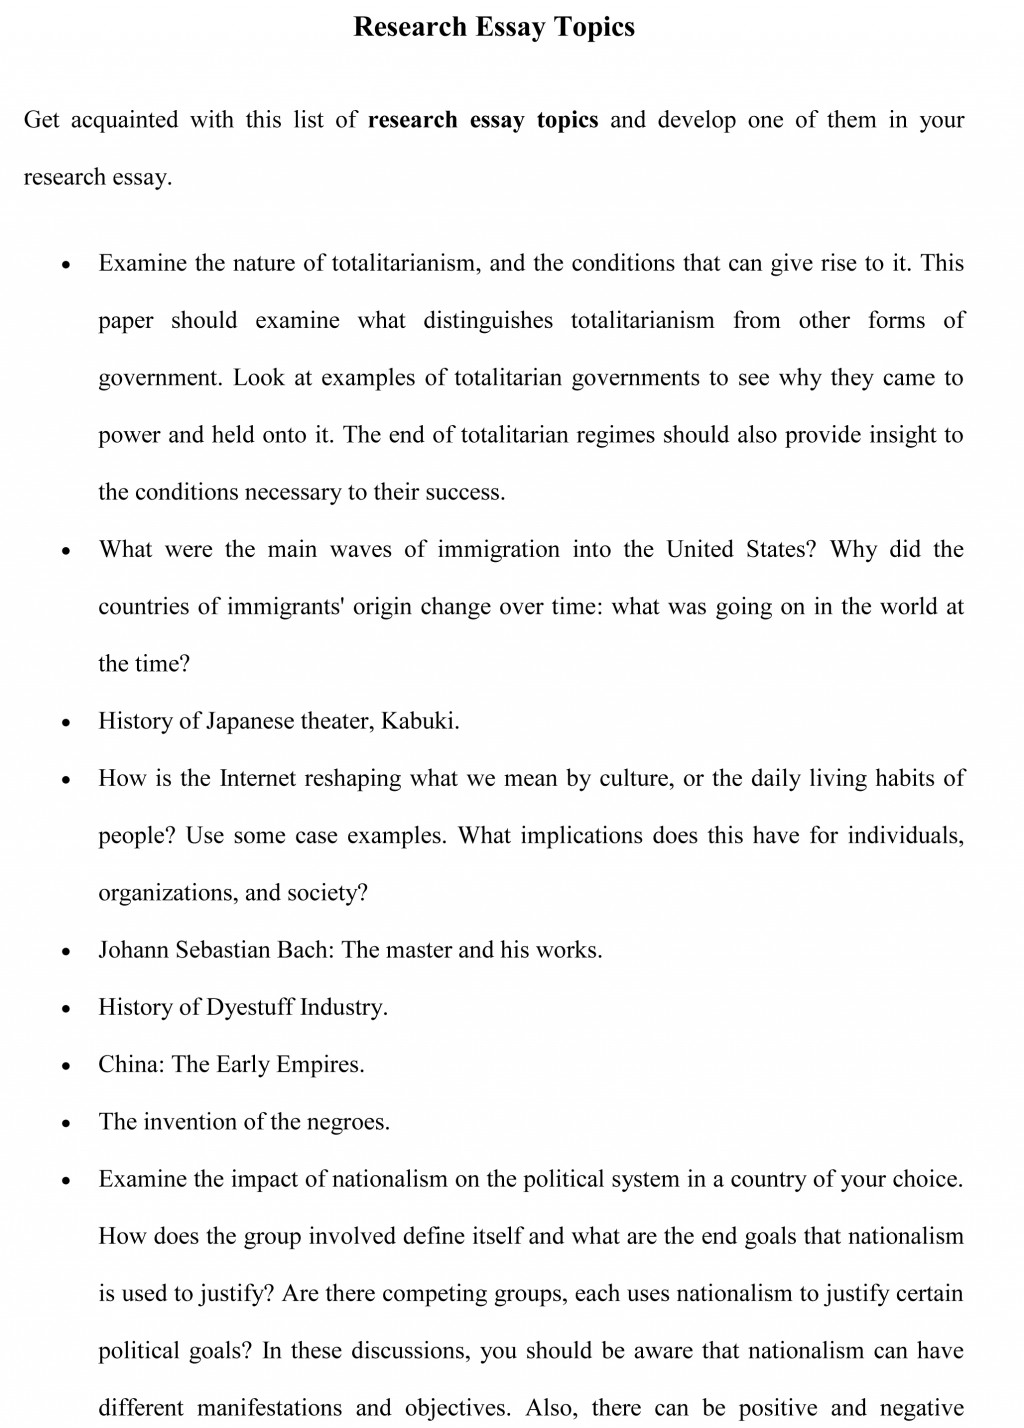 004 Research Essay Topics Sample Easy For History Incredible A Paper Large